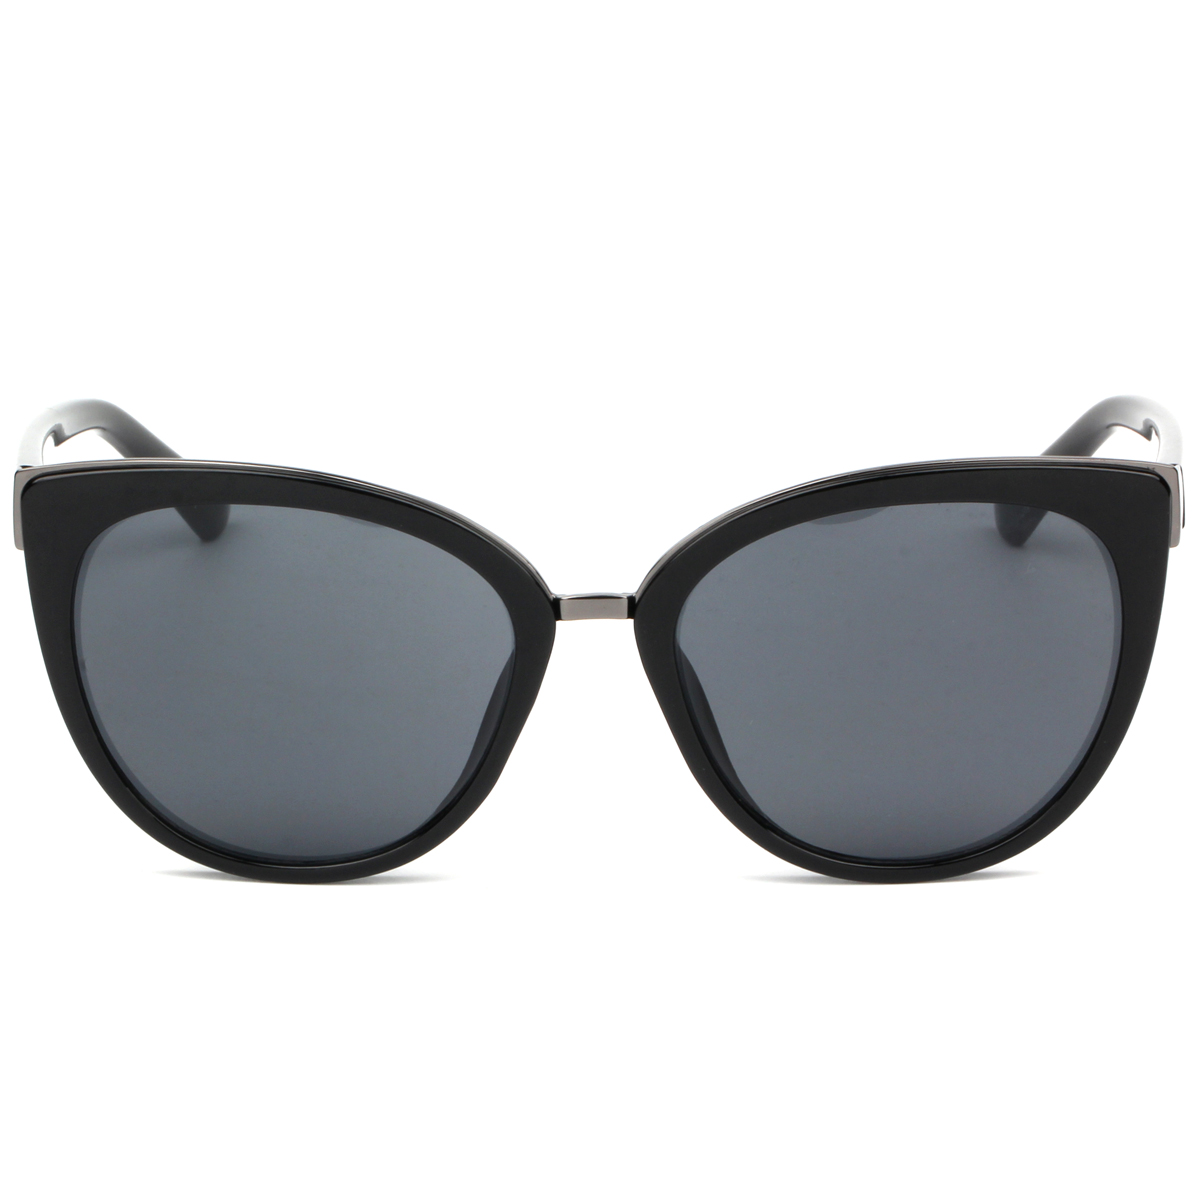 Trendy Wayfarer Sunglasses